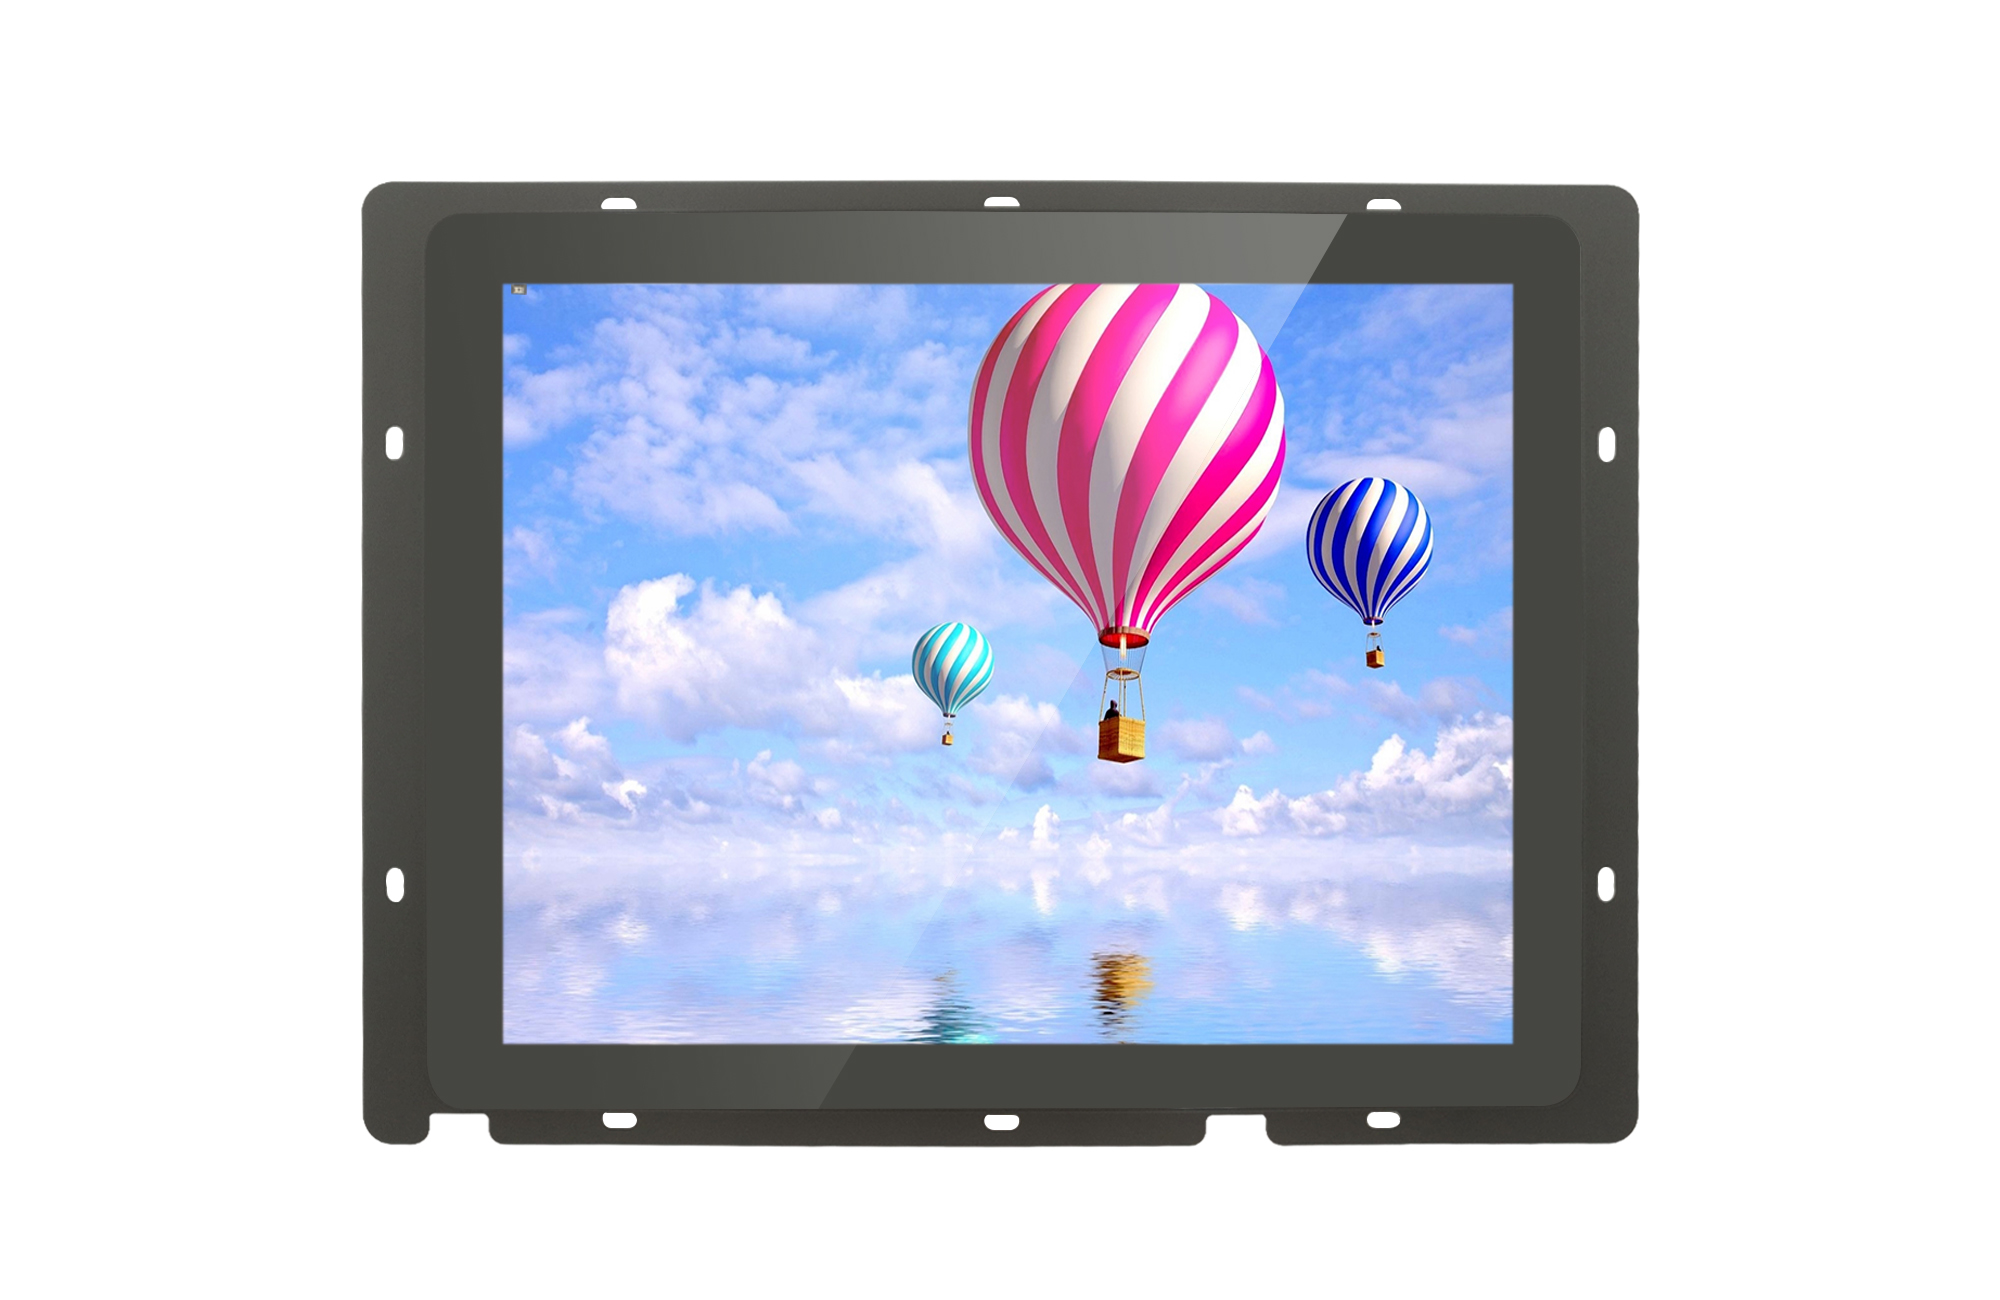 15 Inch Android Based All -in -One Panel PC